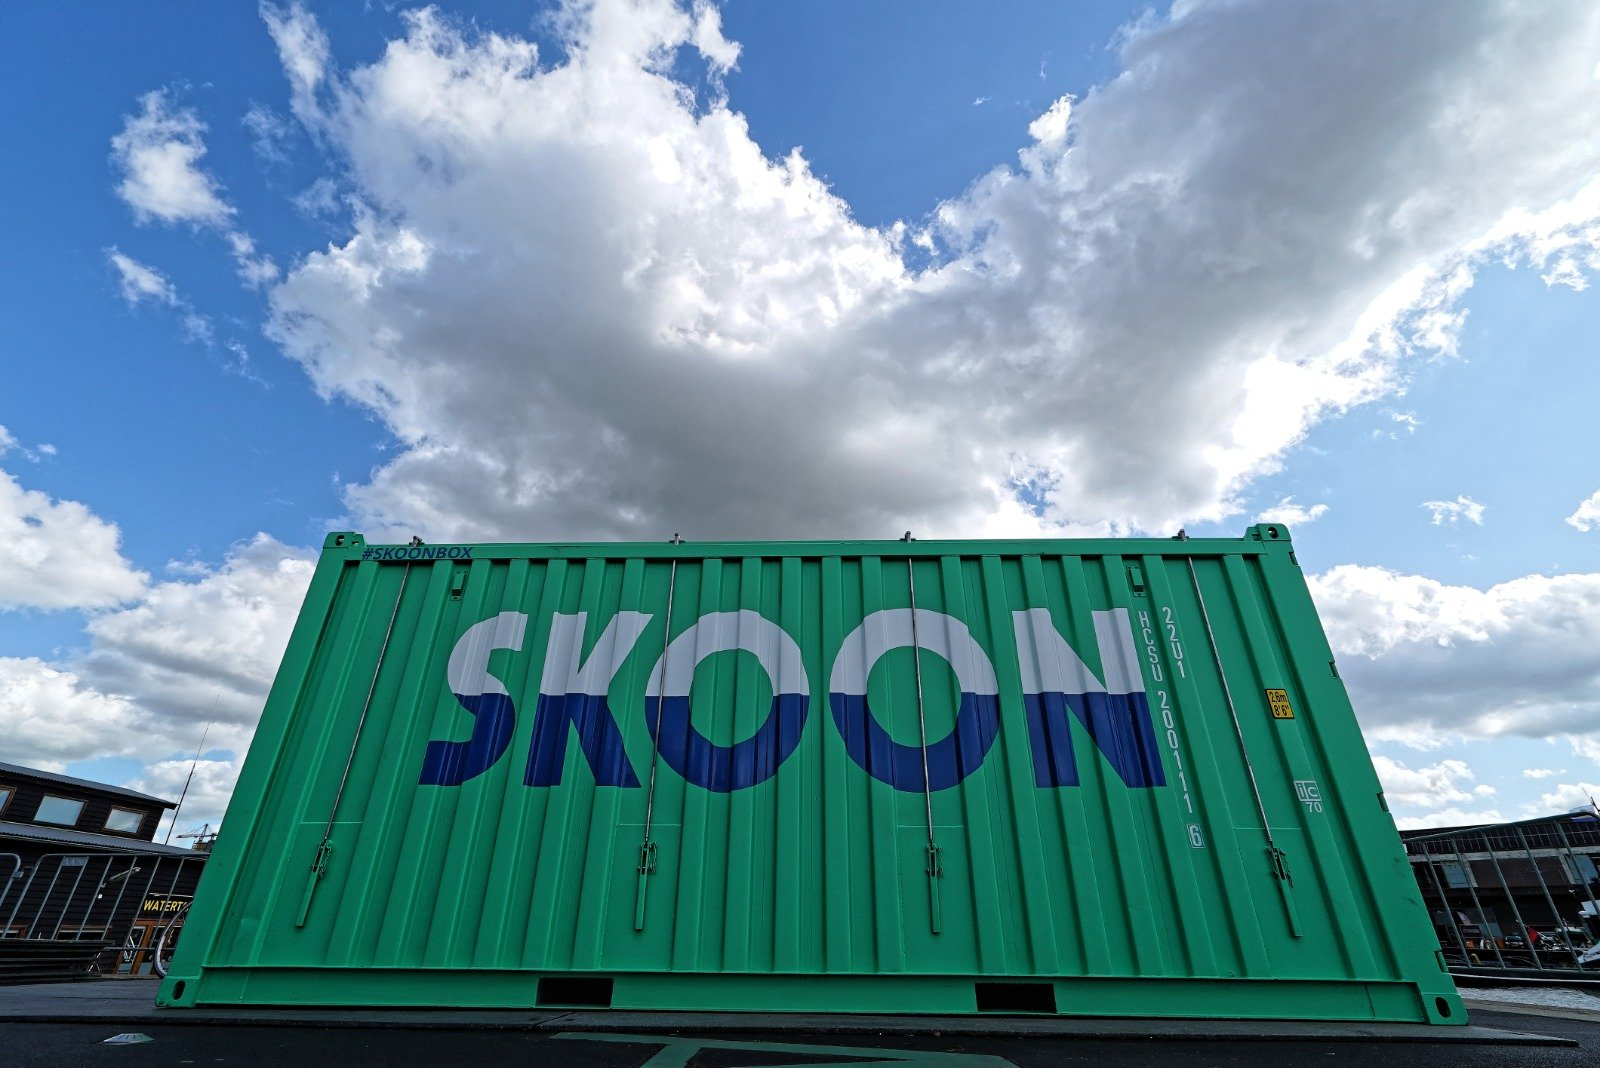 First Skoonbox revealed at World Port Days